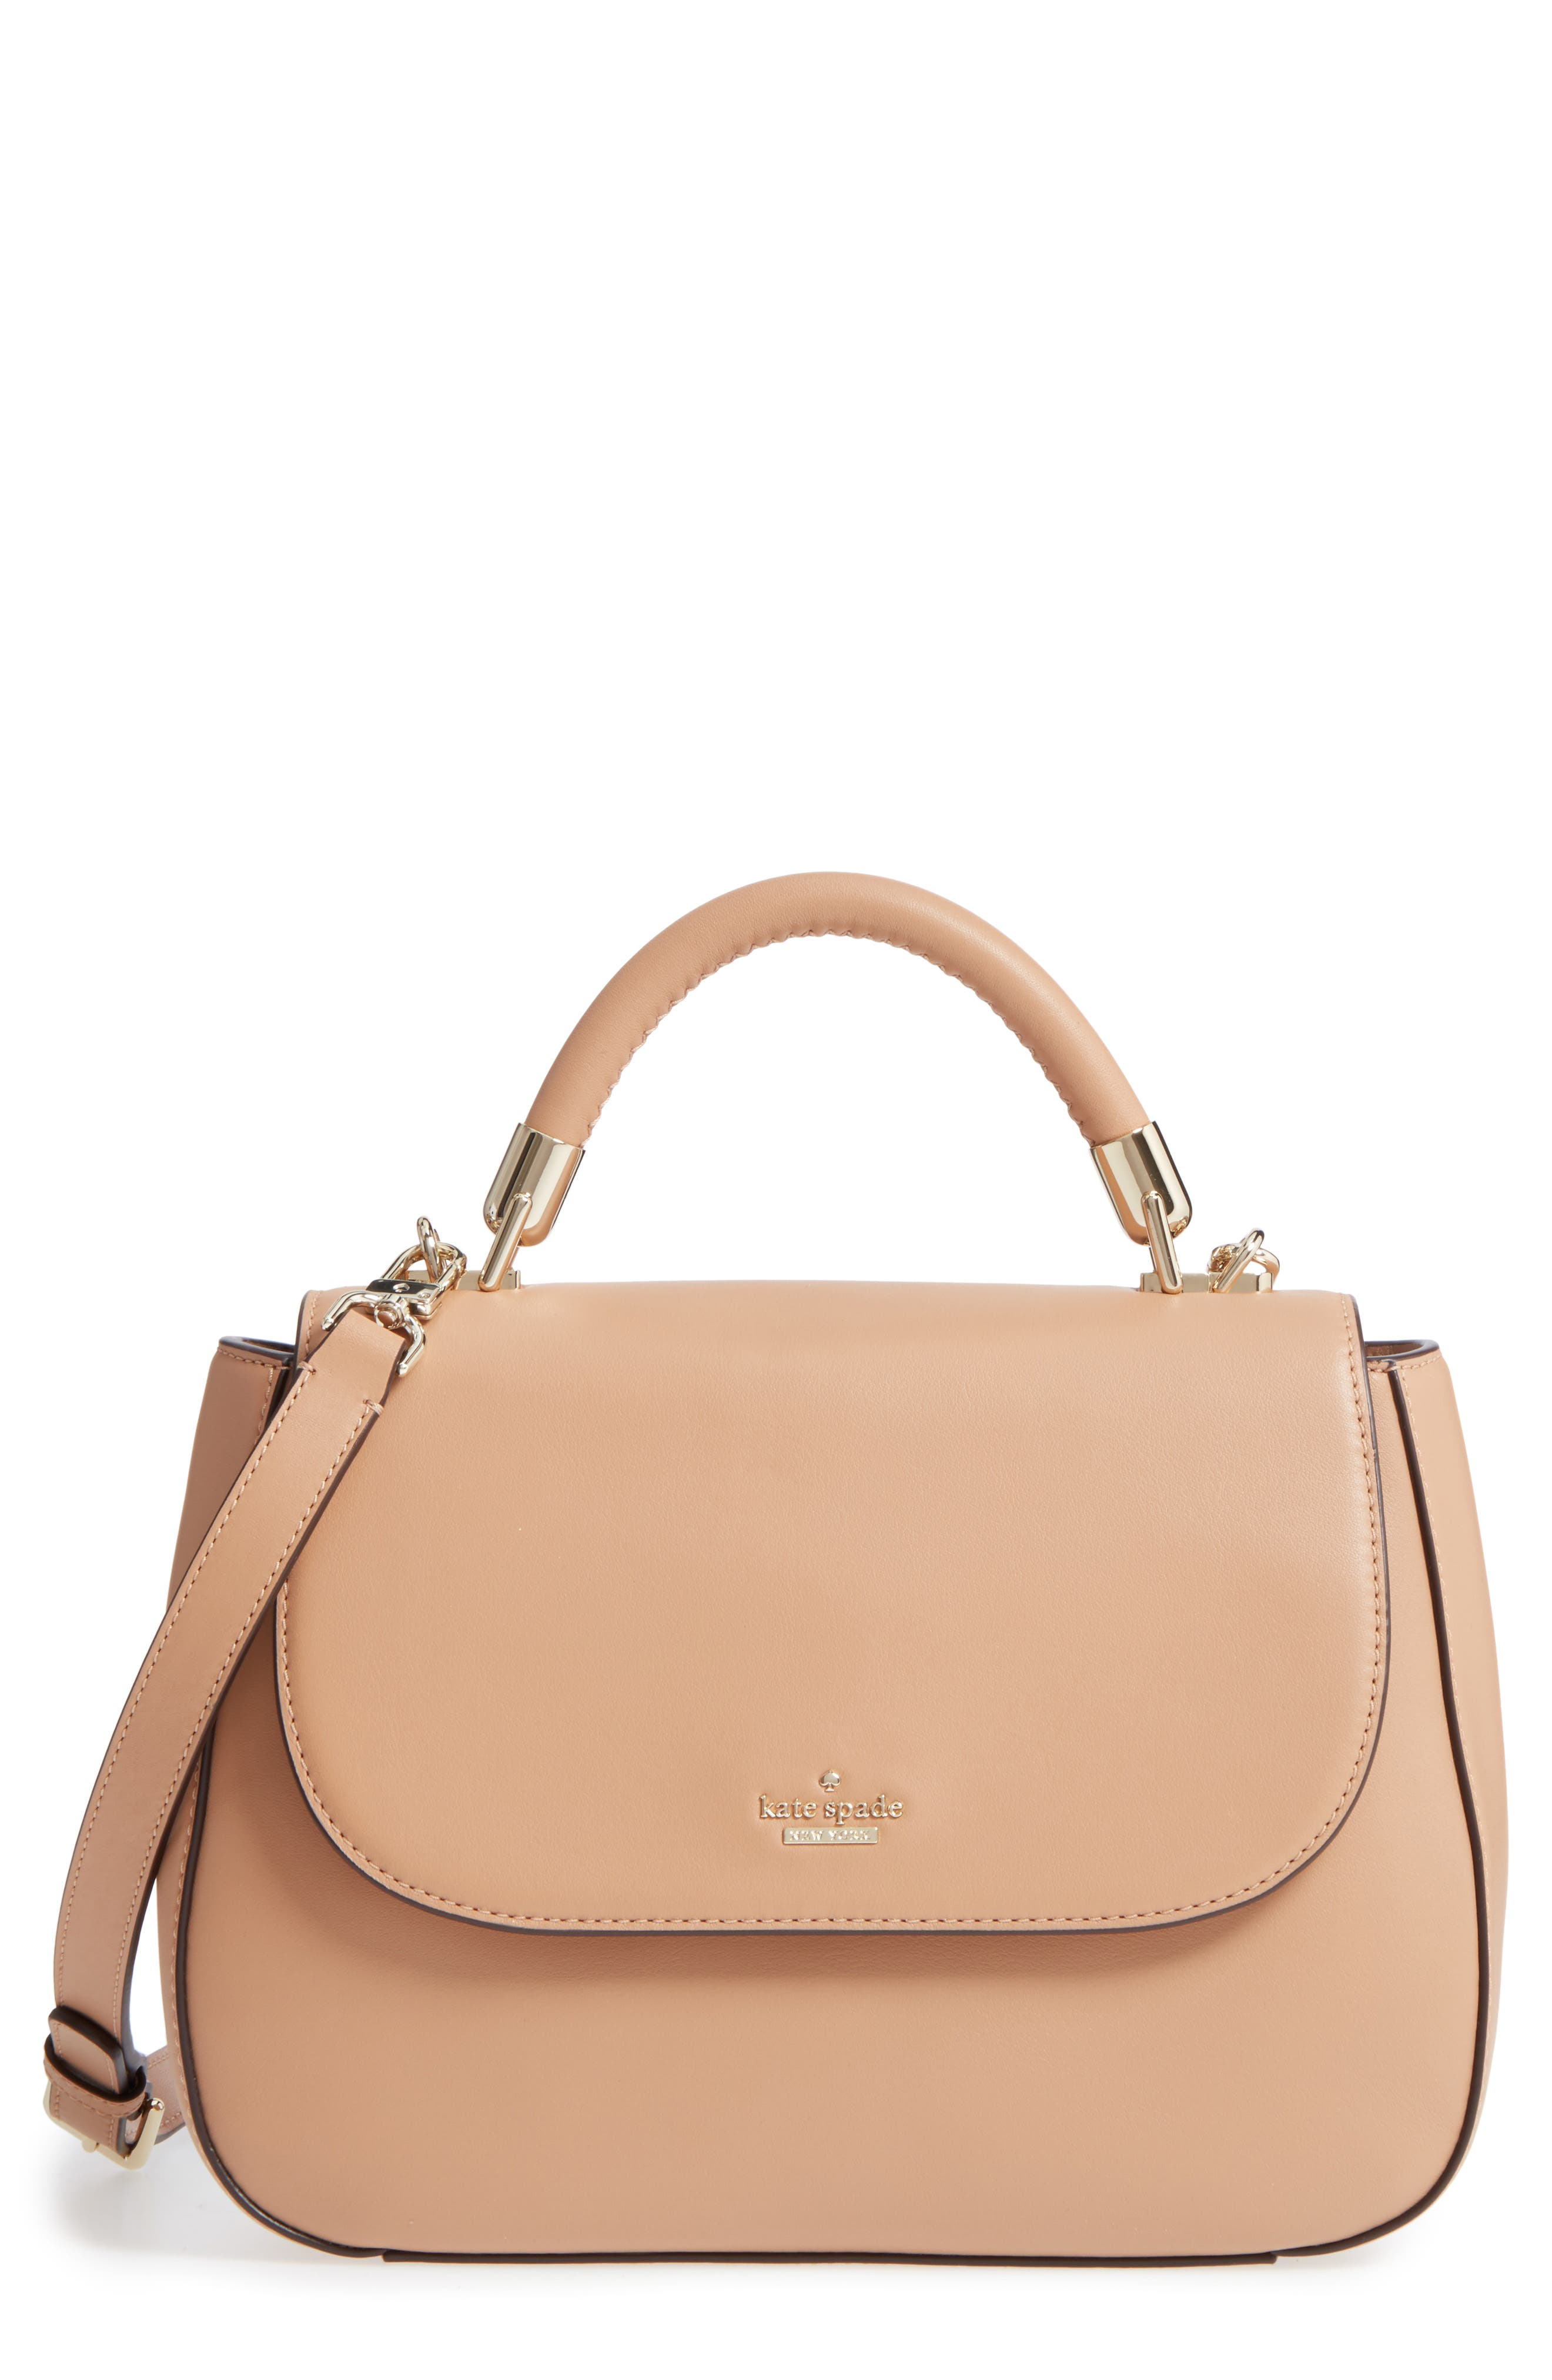 kate spade new york robson lane - marcelle leather top handle satchel